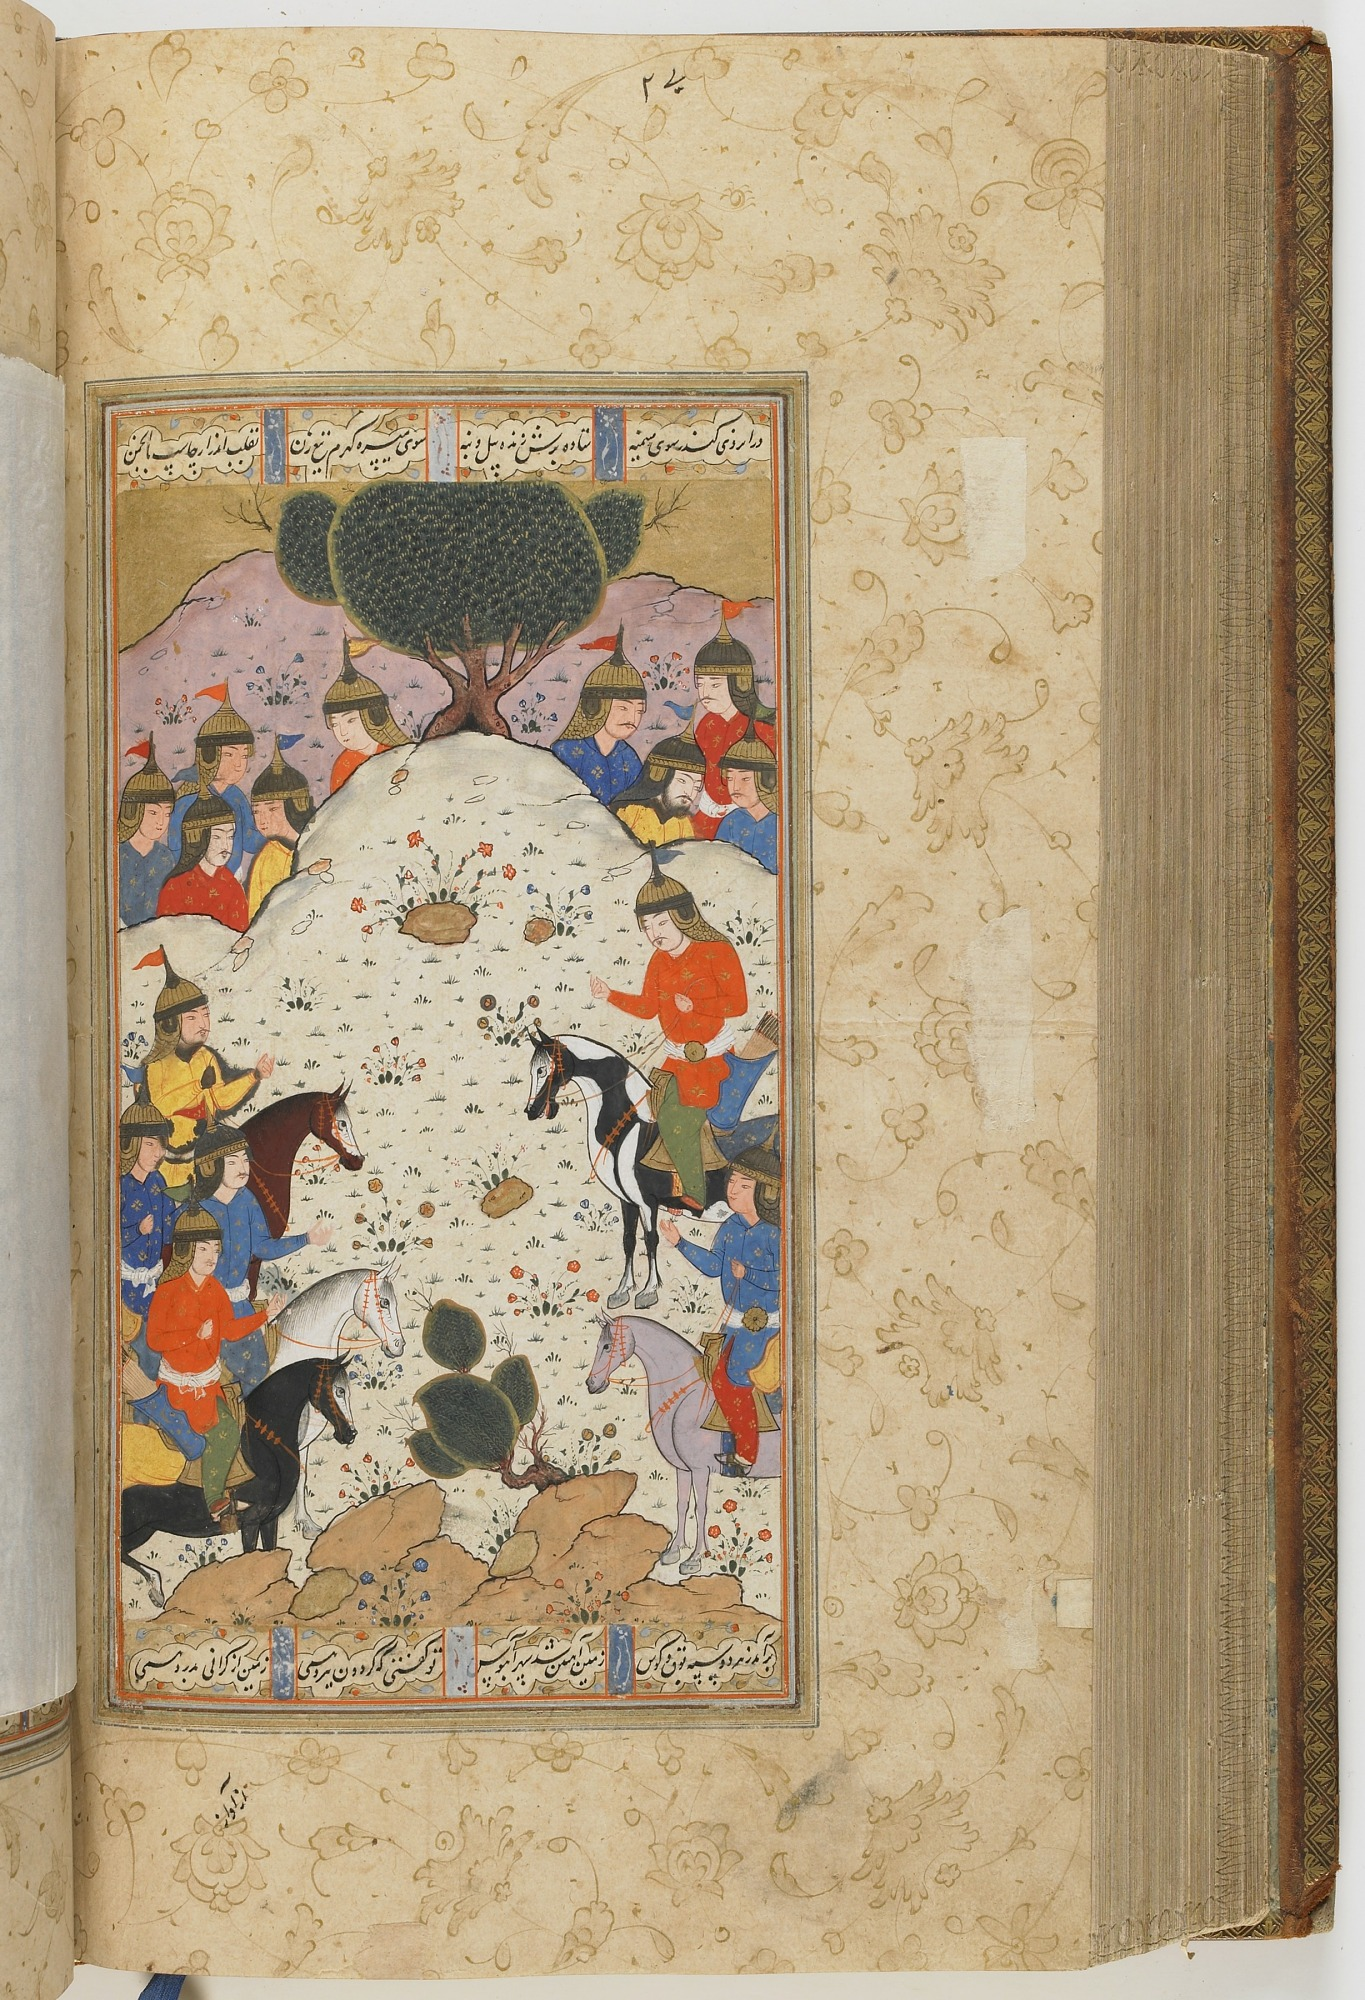 folio 271 verso: The Shahnama (Book of kings) by Firdausi (d. 1020)